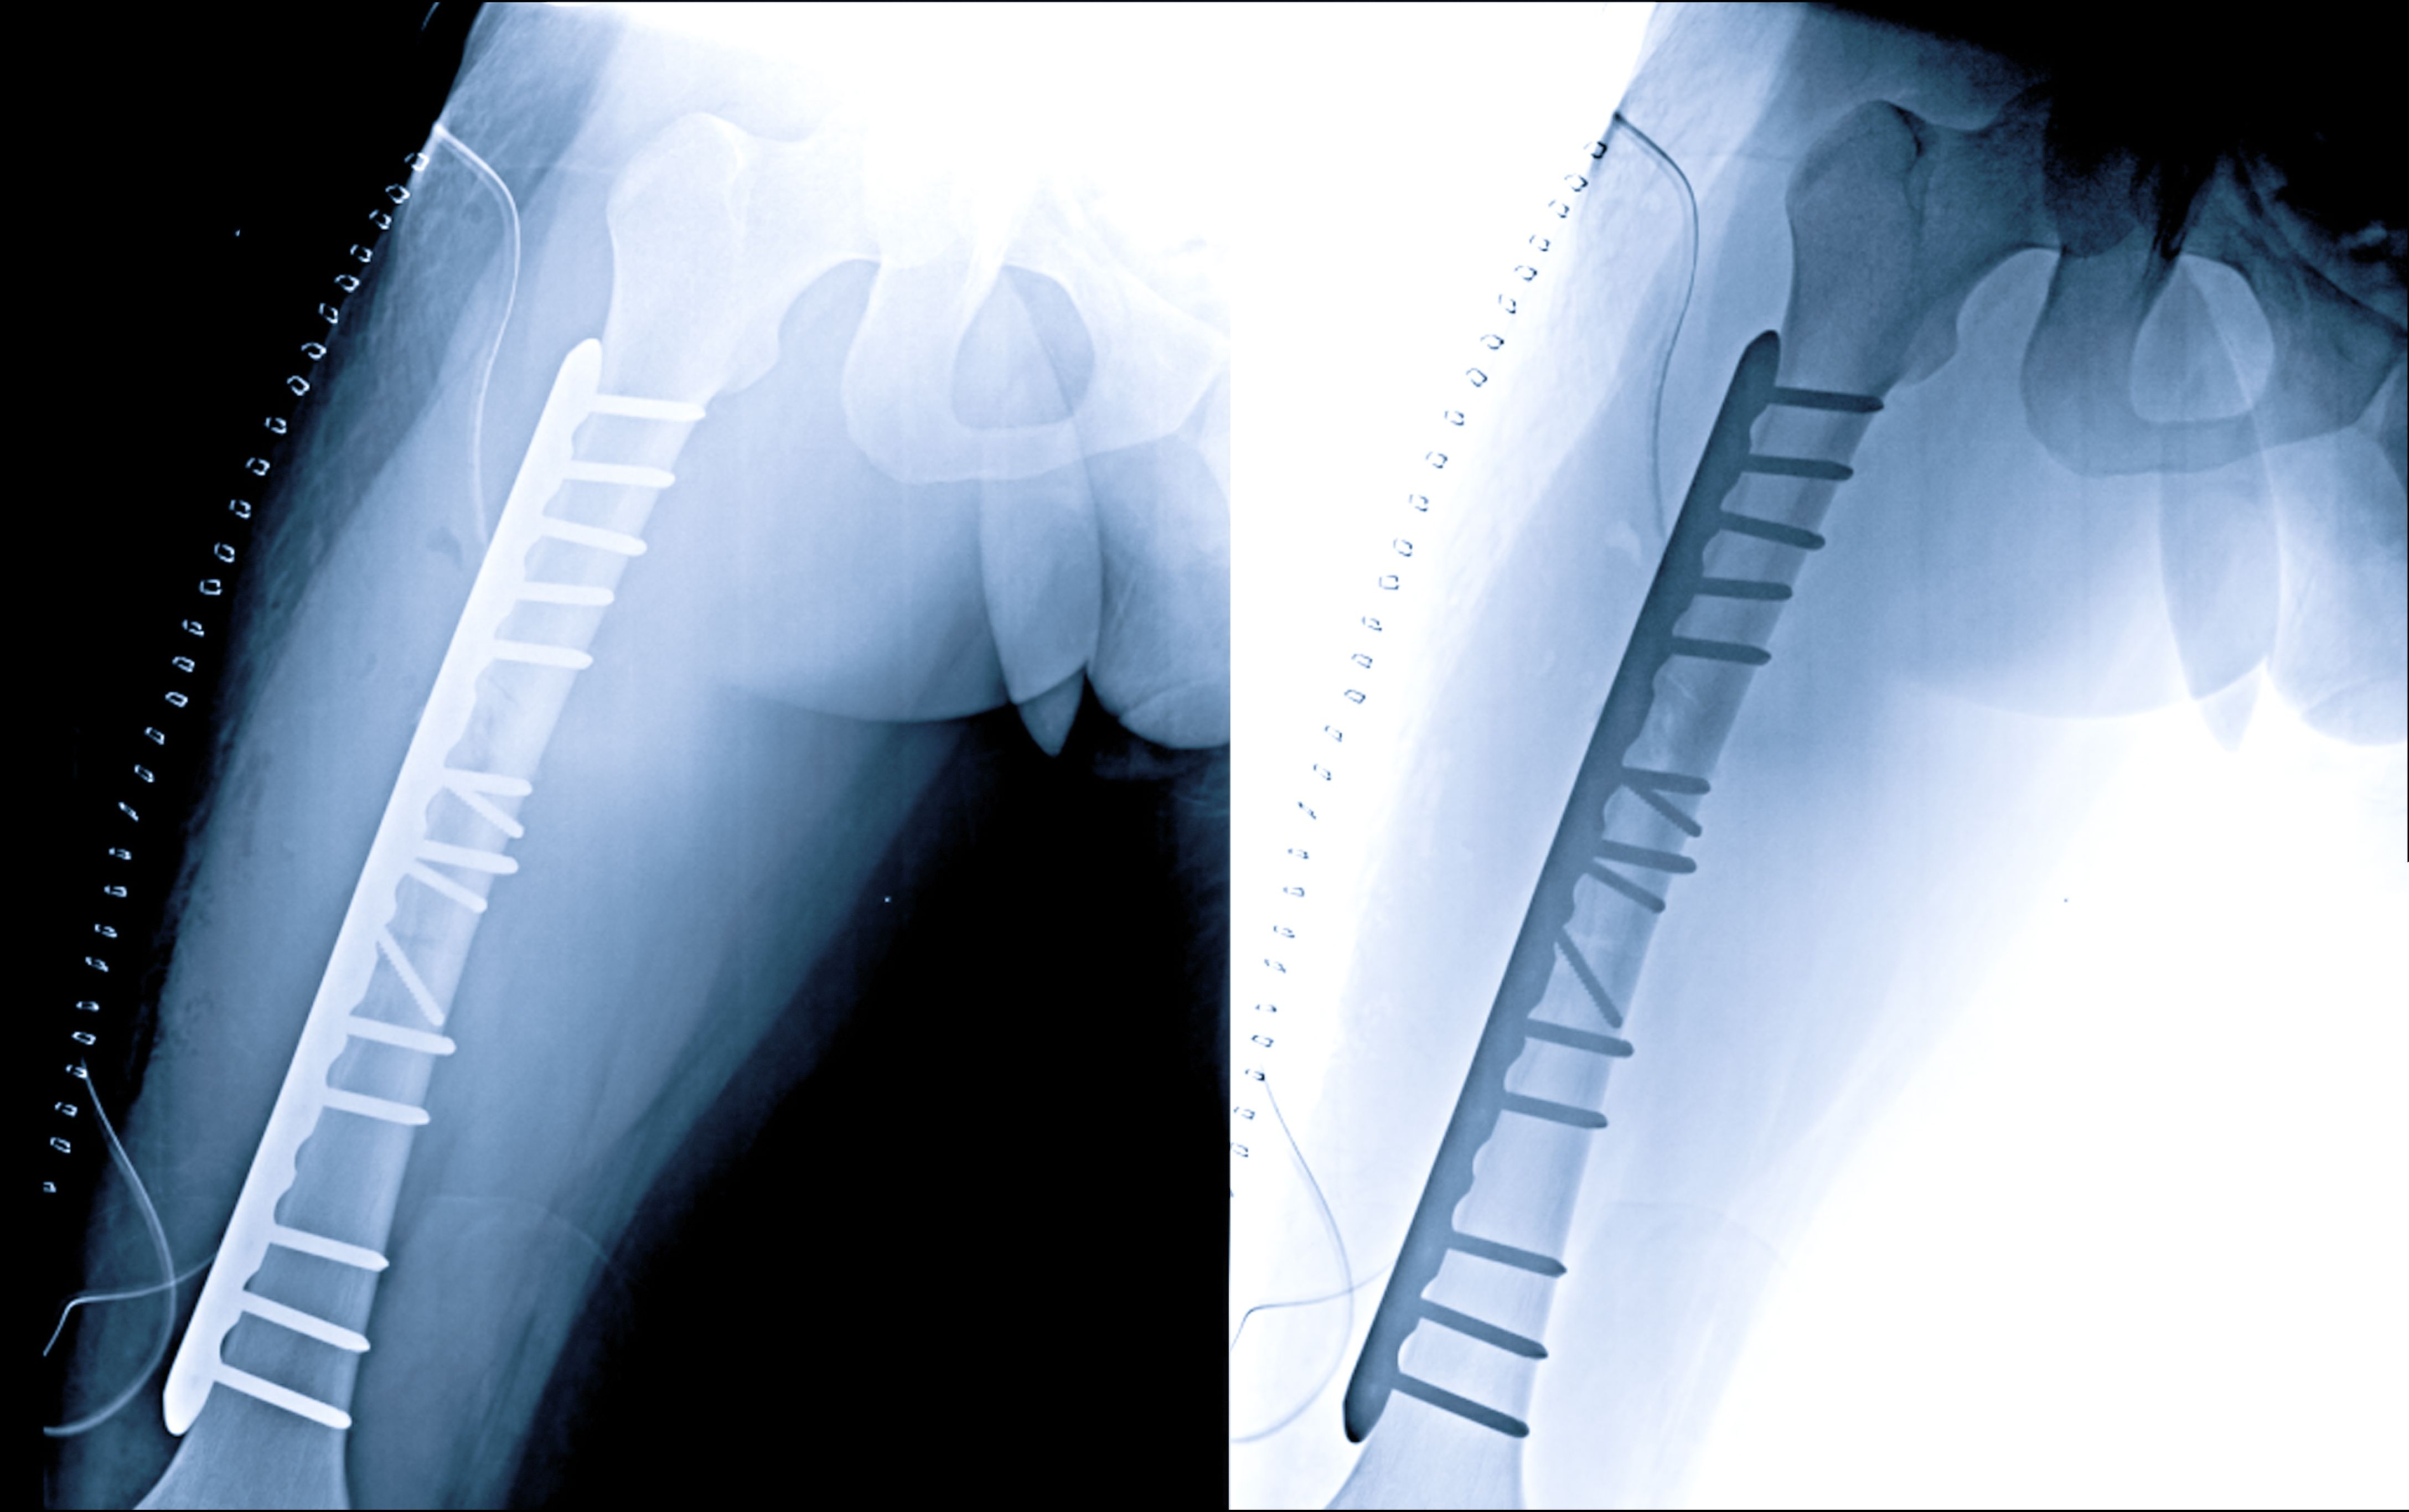 Atypical Bone Fracture Risk Rises With Bisphosphonates: Atypical femur fracture risks are very low, but the risk rises with long-term use of bisphosphonate, study says.